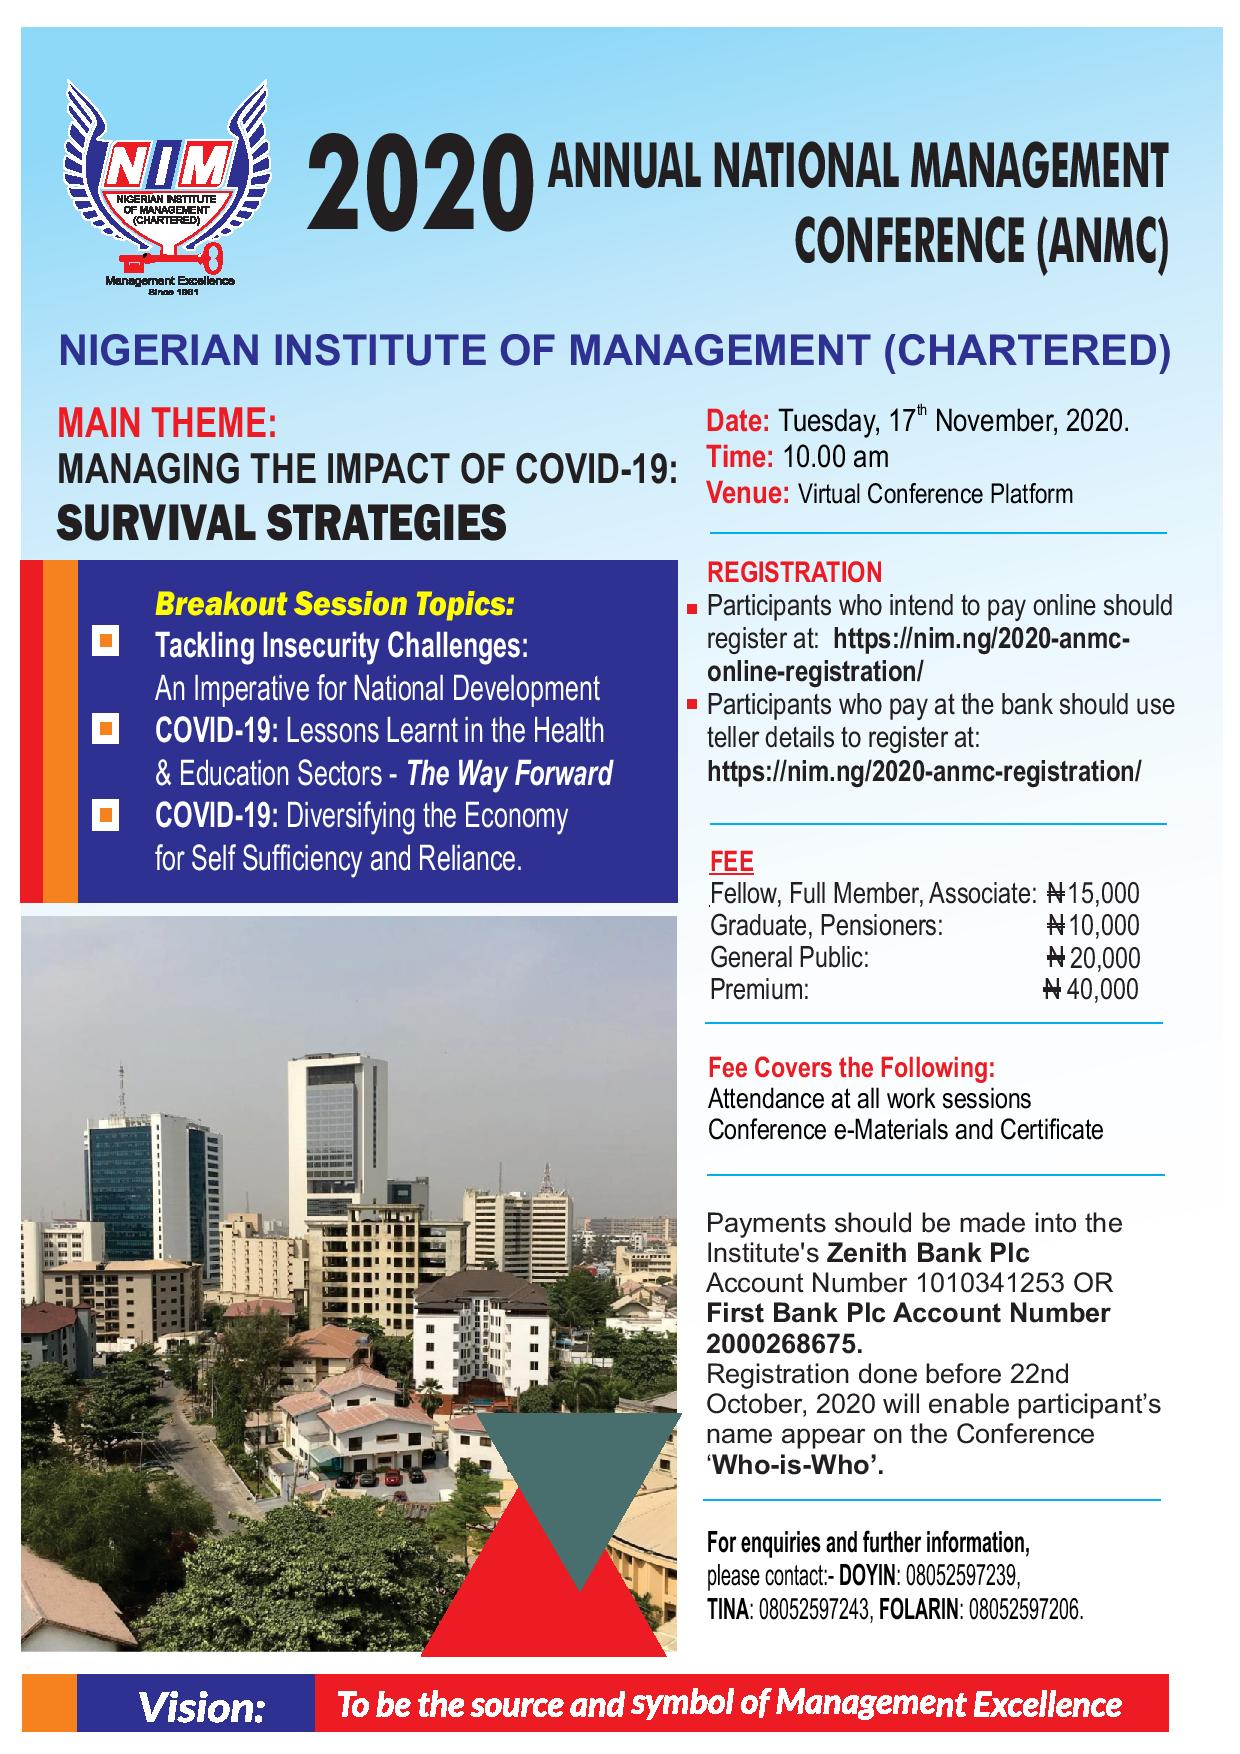 2020 Annual National Management Conference